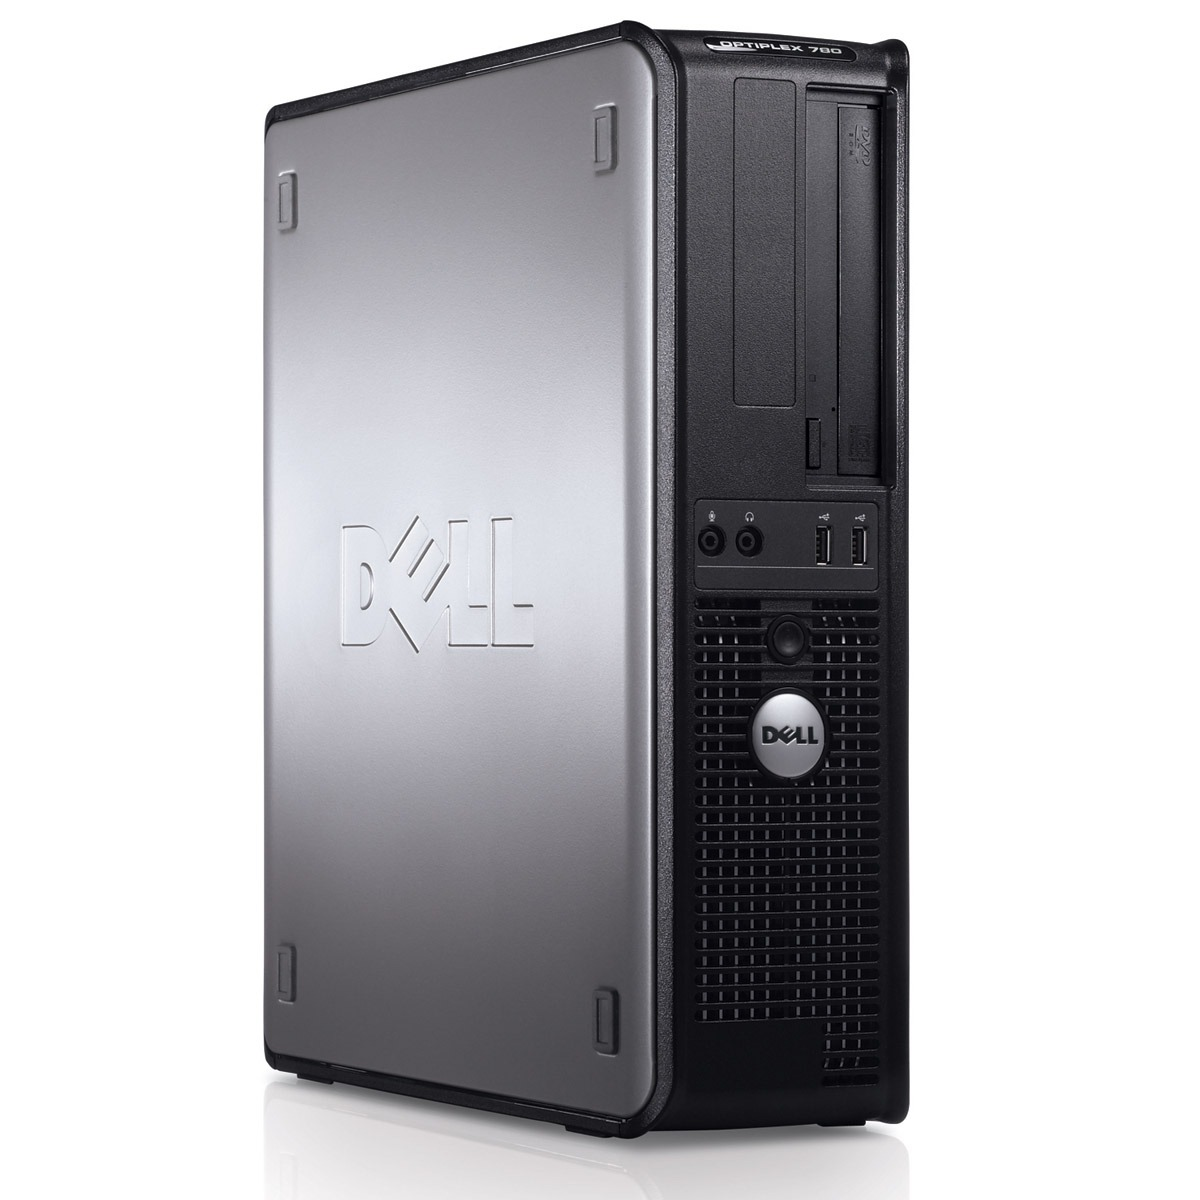 dell optiplex 780 dt pc de bureau dell sur. Black Bedroom Furniture Sets. Home Design Ideas